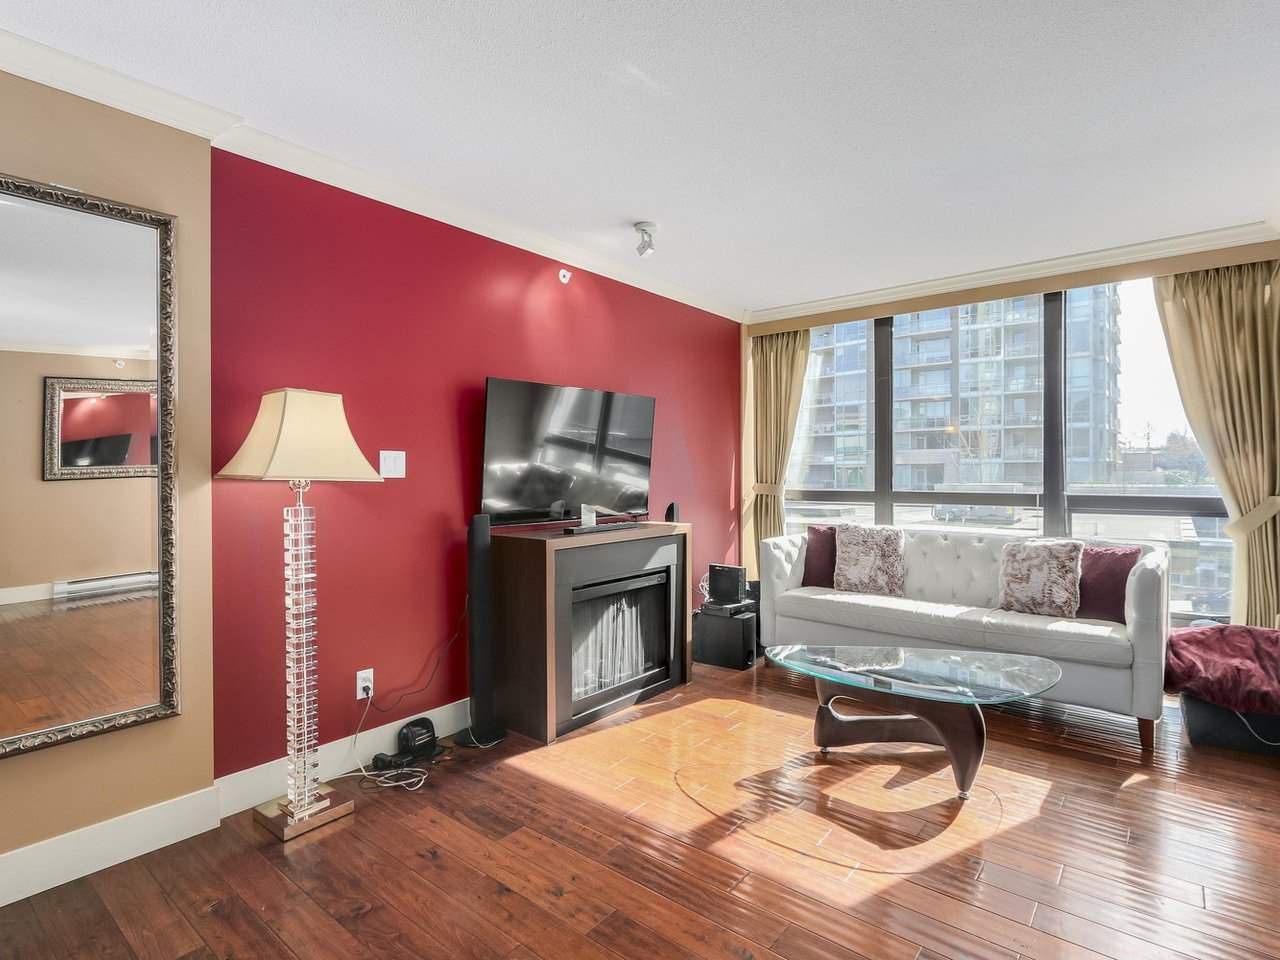 """Main Photo: 304 2959 GLEN Drive in Coquitlam: North Coquitlam Condo for sale in """"THE PARC"""" : MLS®# R2246472"""